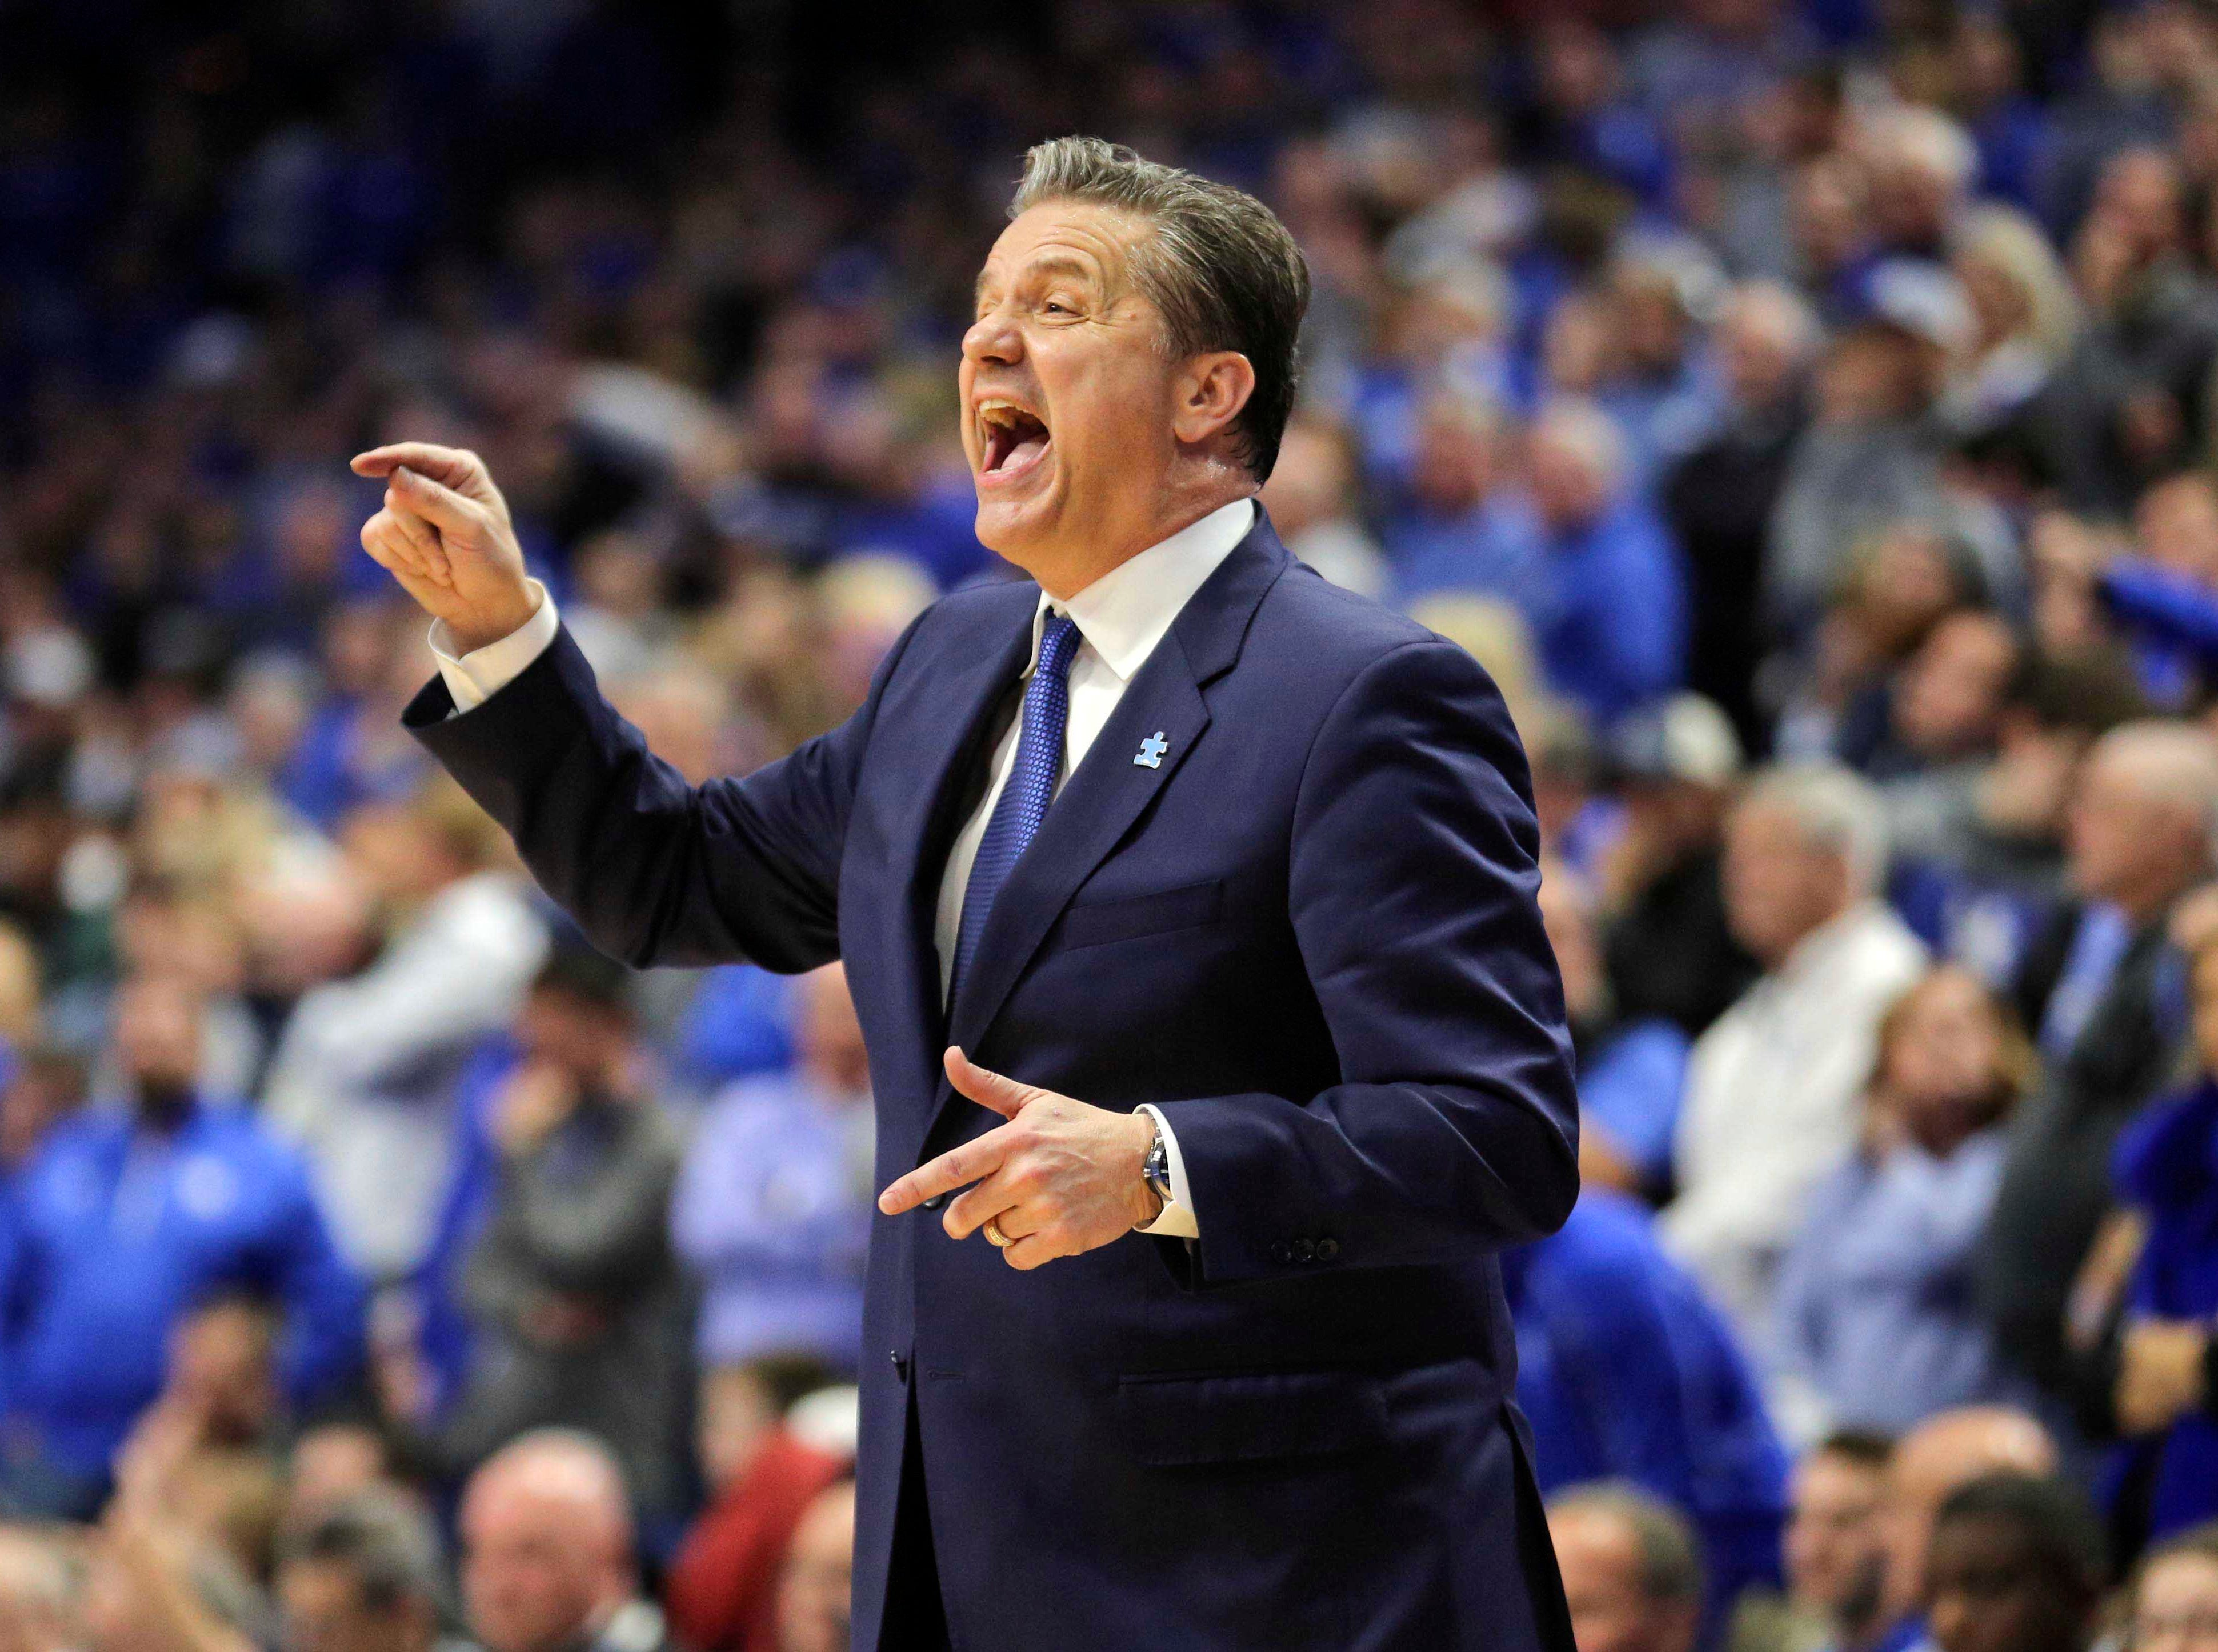 Feb 12, 2019; Lexington, KY, USA; Kentucky Wildcats head coach John Calipari reacts during the game against the LSU Tigers in the second half at Rupp Arena. Mandatory Credit: Mark Zerof-USA TODAY Sports